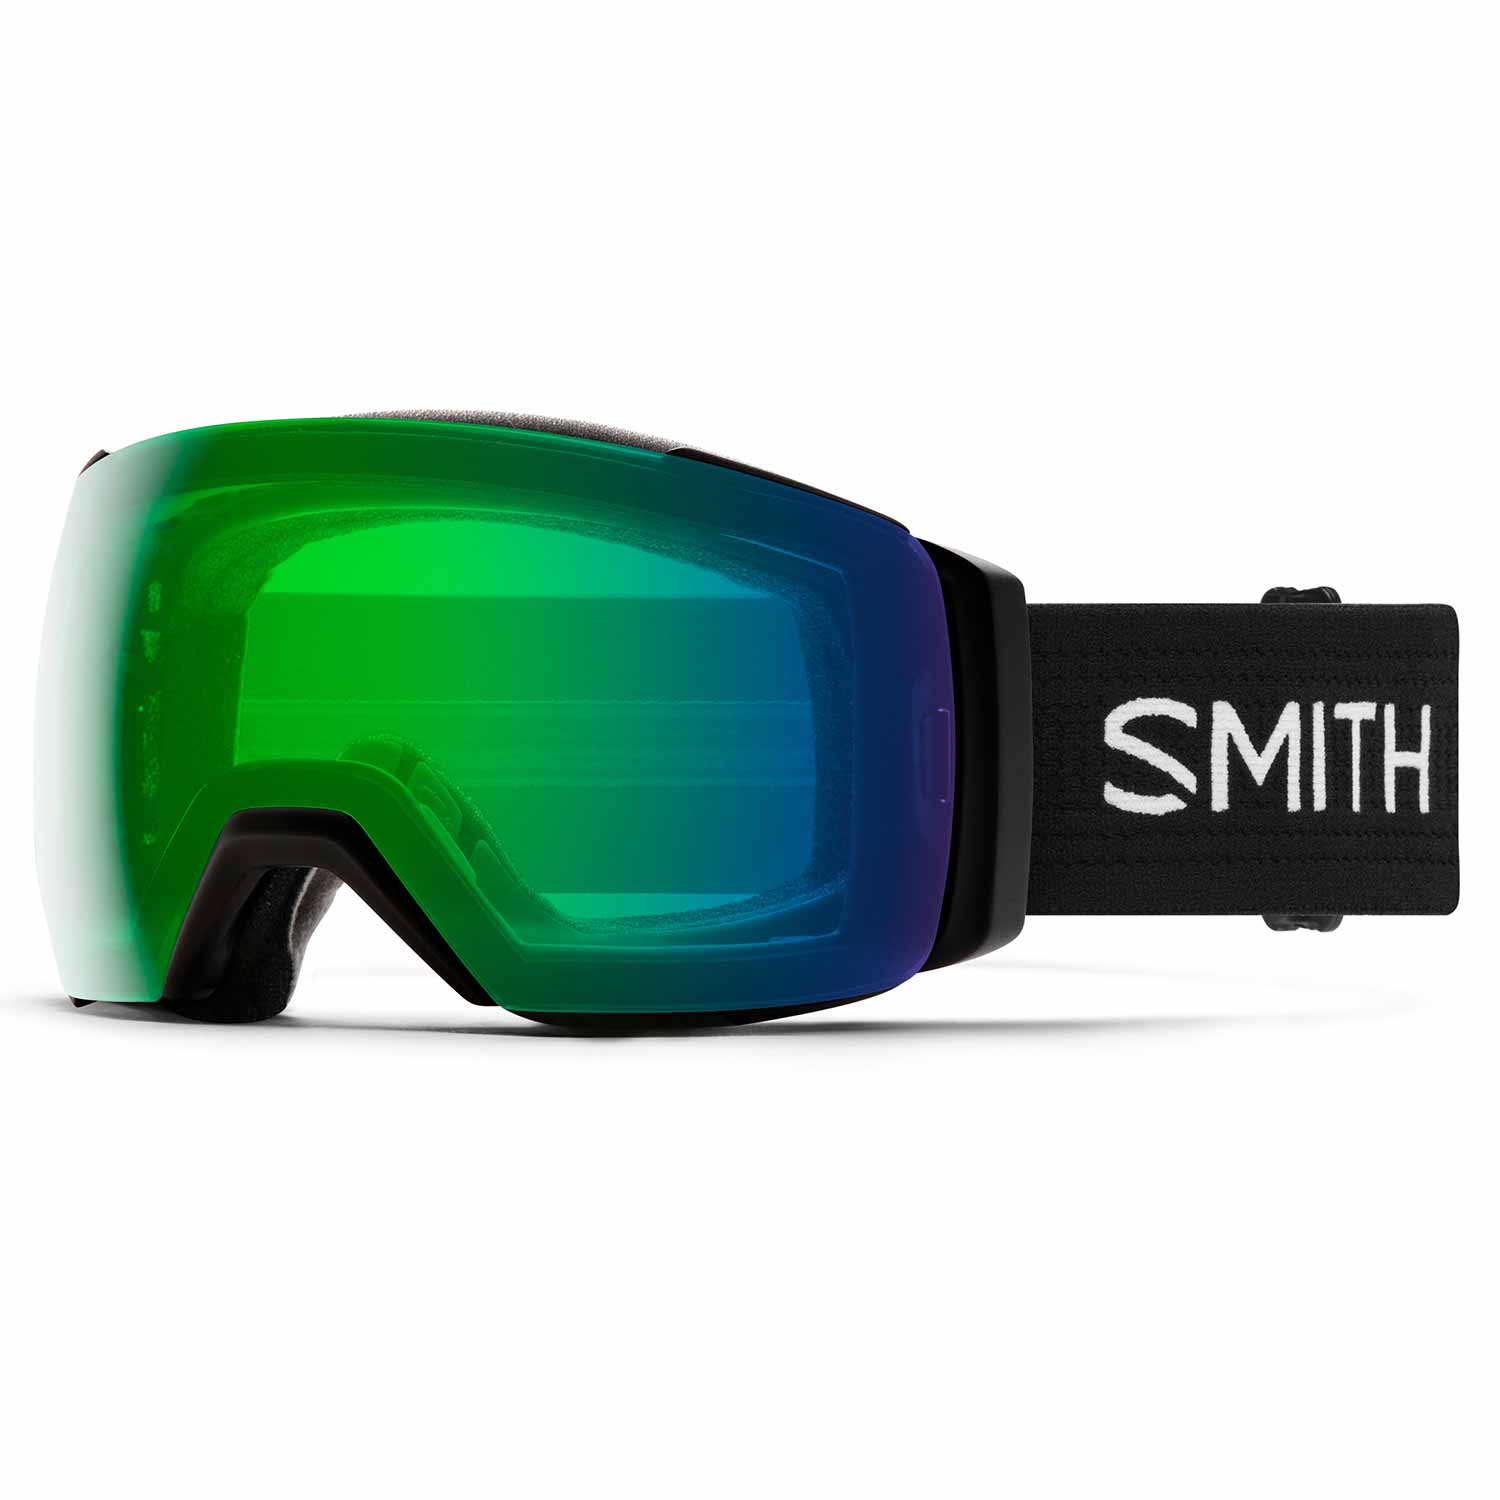 Smith IO Mag XL Goggle Black/Chromapop Everyday Green Mirror 2020